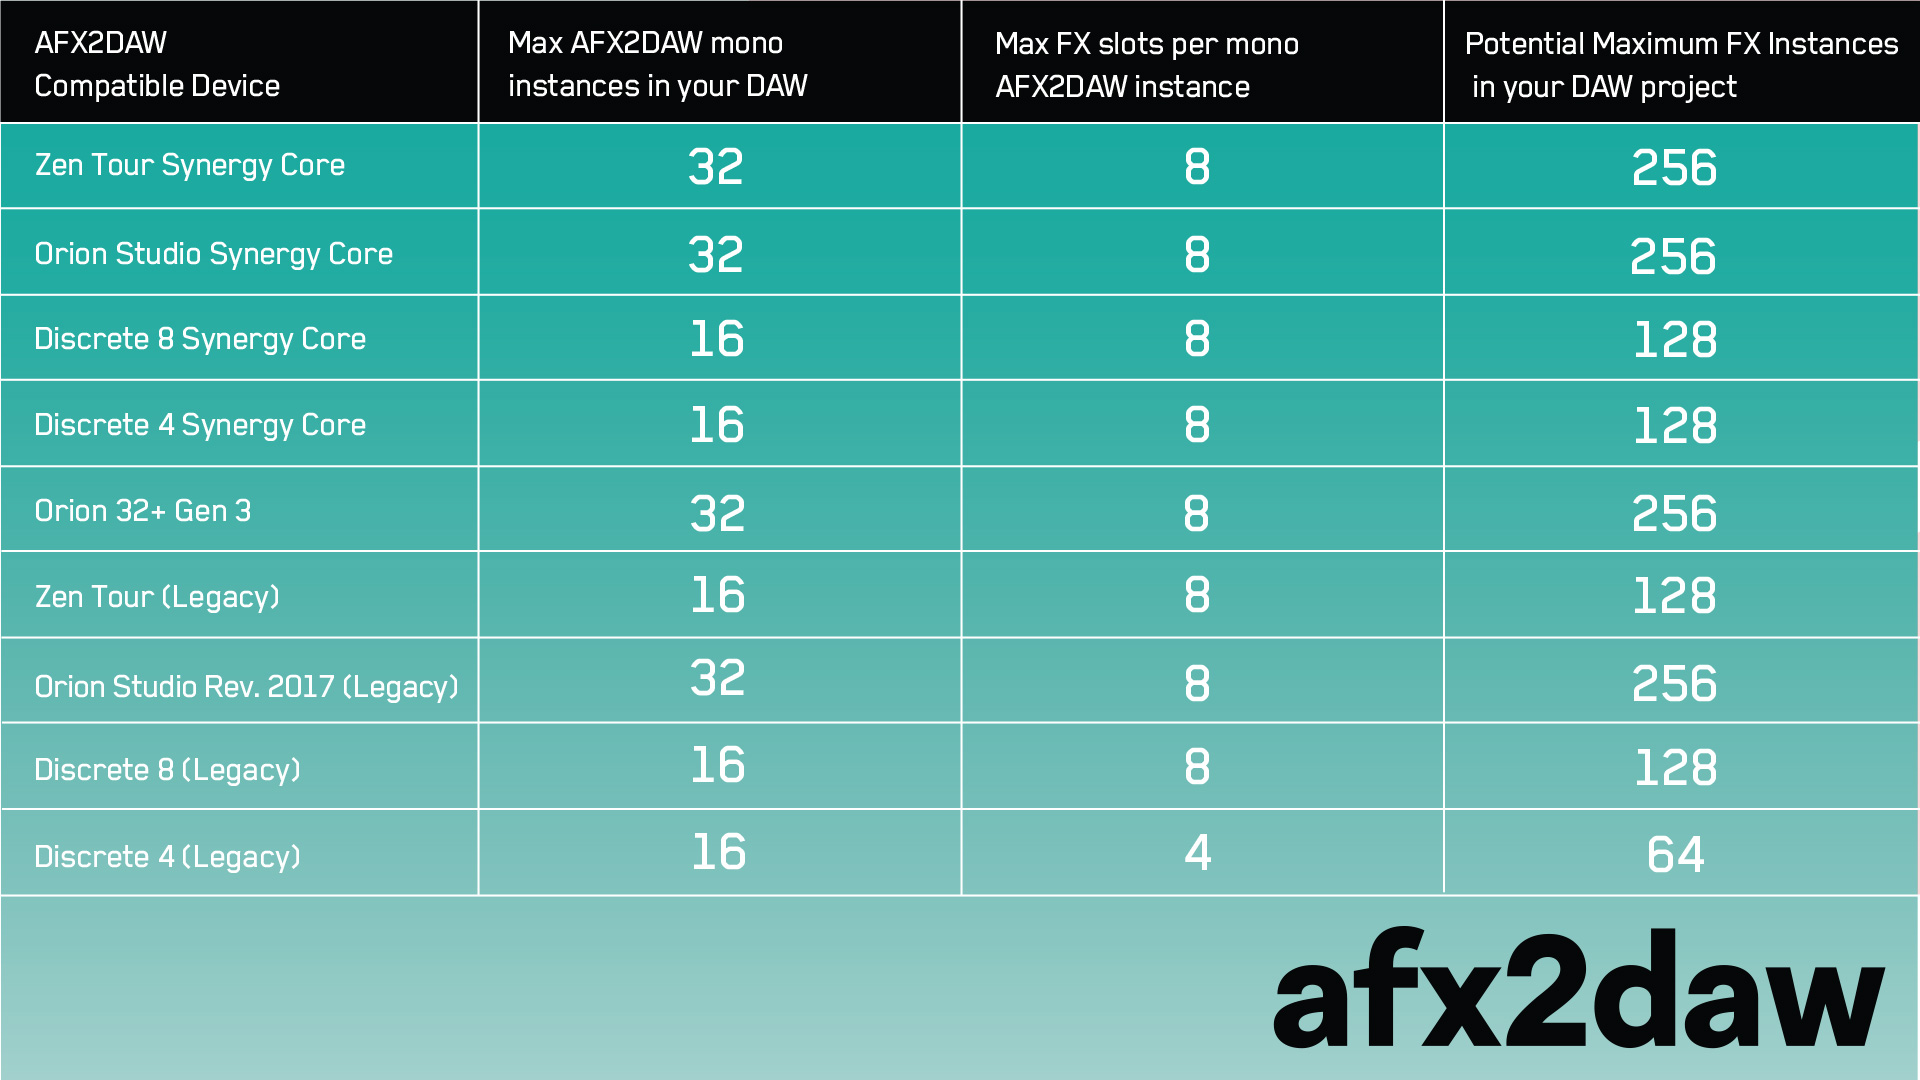 Graphic showing how many FX instances can be loaded in the DAW for every Antelope Audio interface